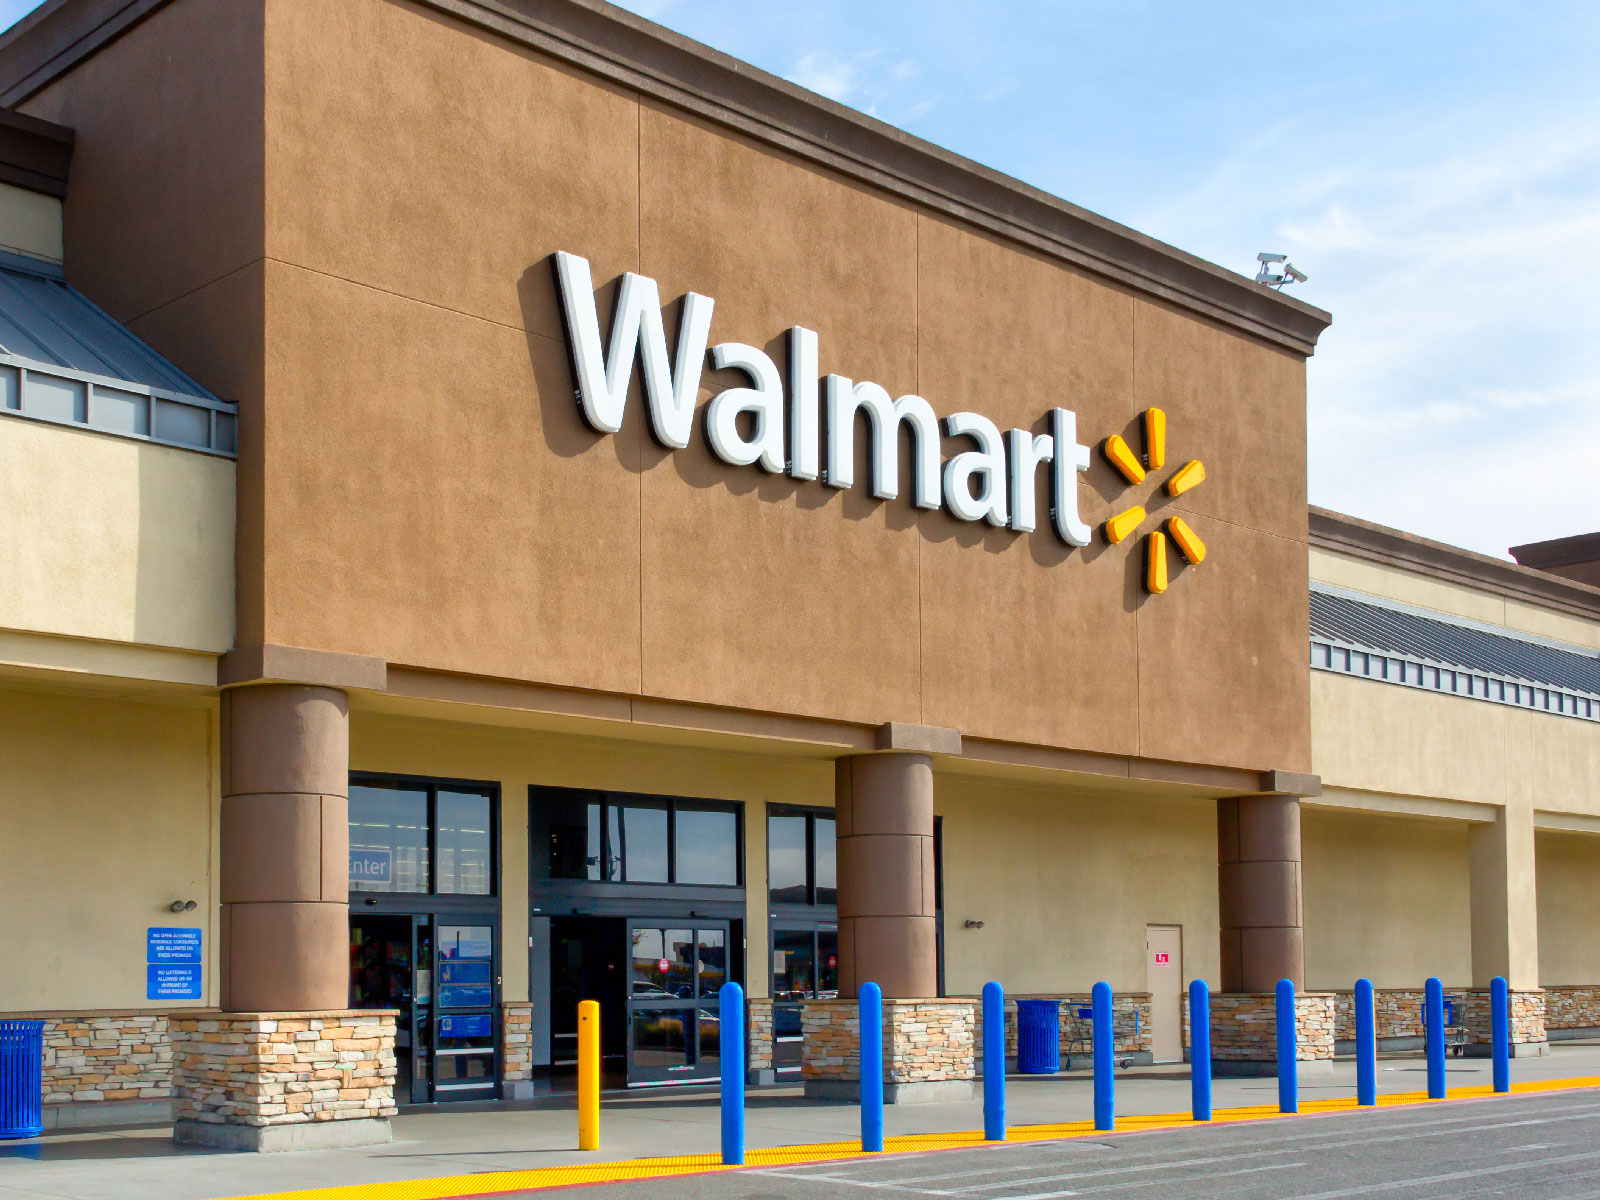 Texas Walmarts Won't Be Adding a Liquor Aisle Anytime Soon